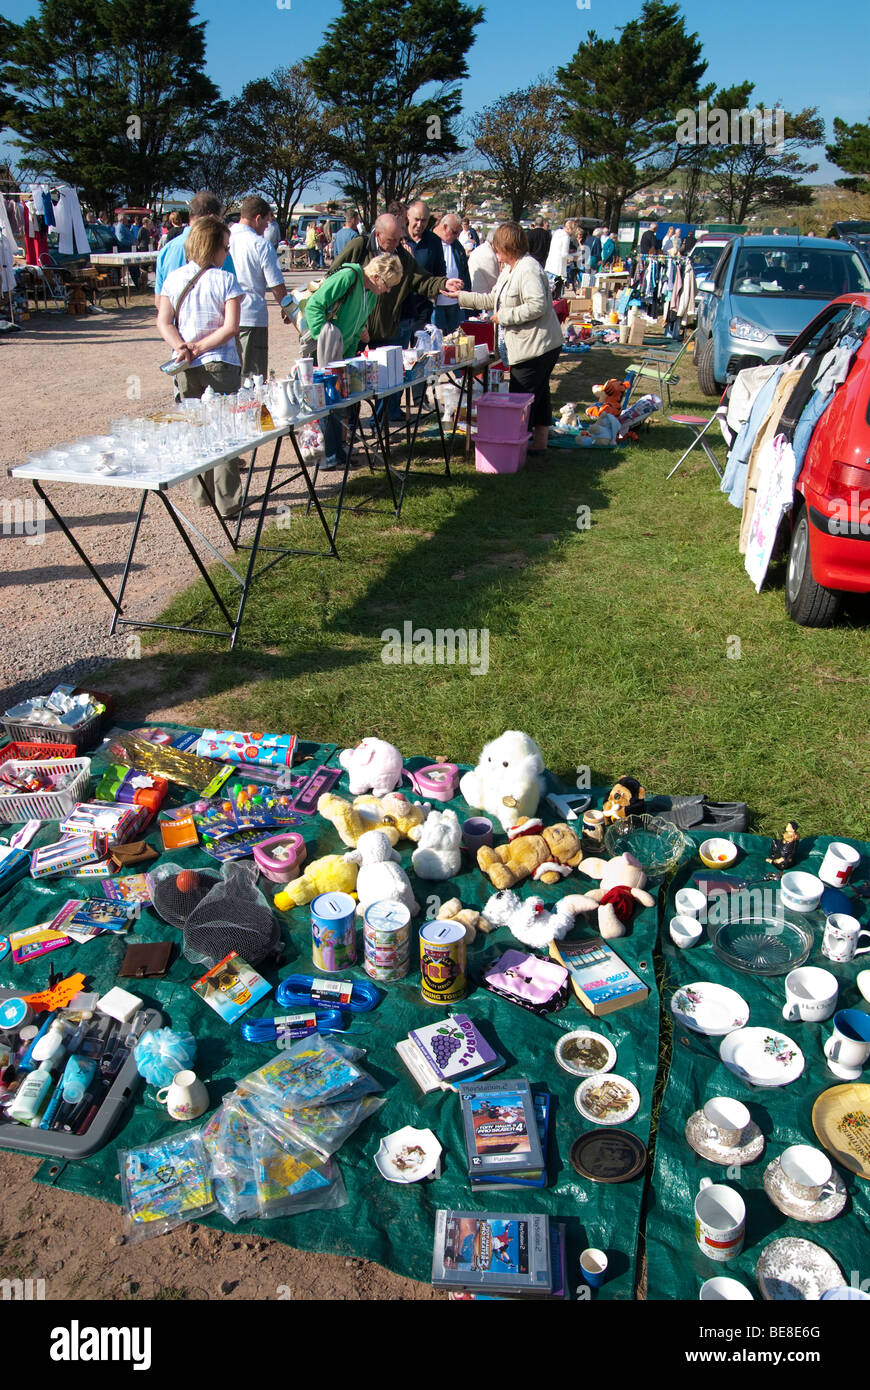 Traders and customers at a Sunday car boot sale in West Bay, Dorset - Stock Image